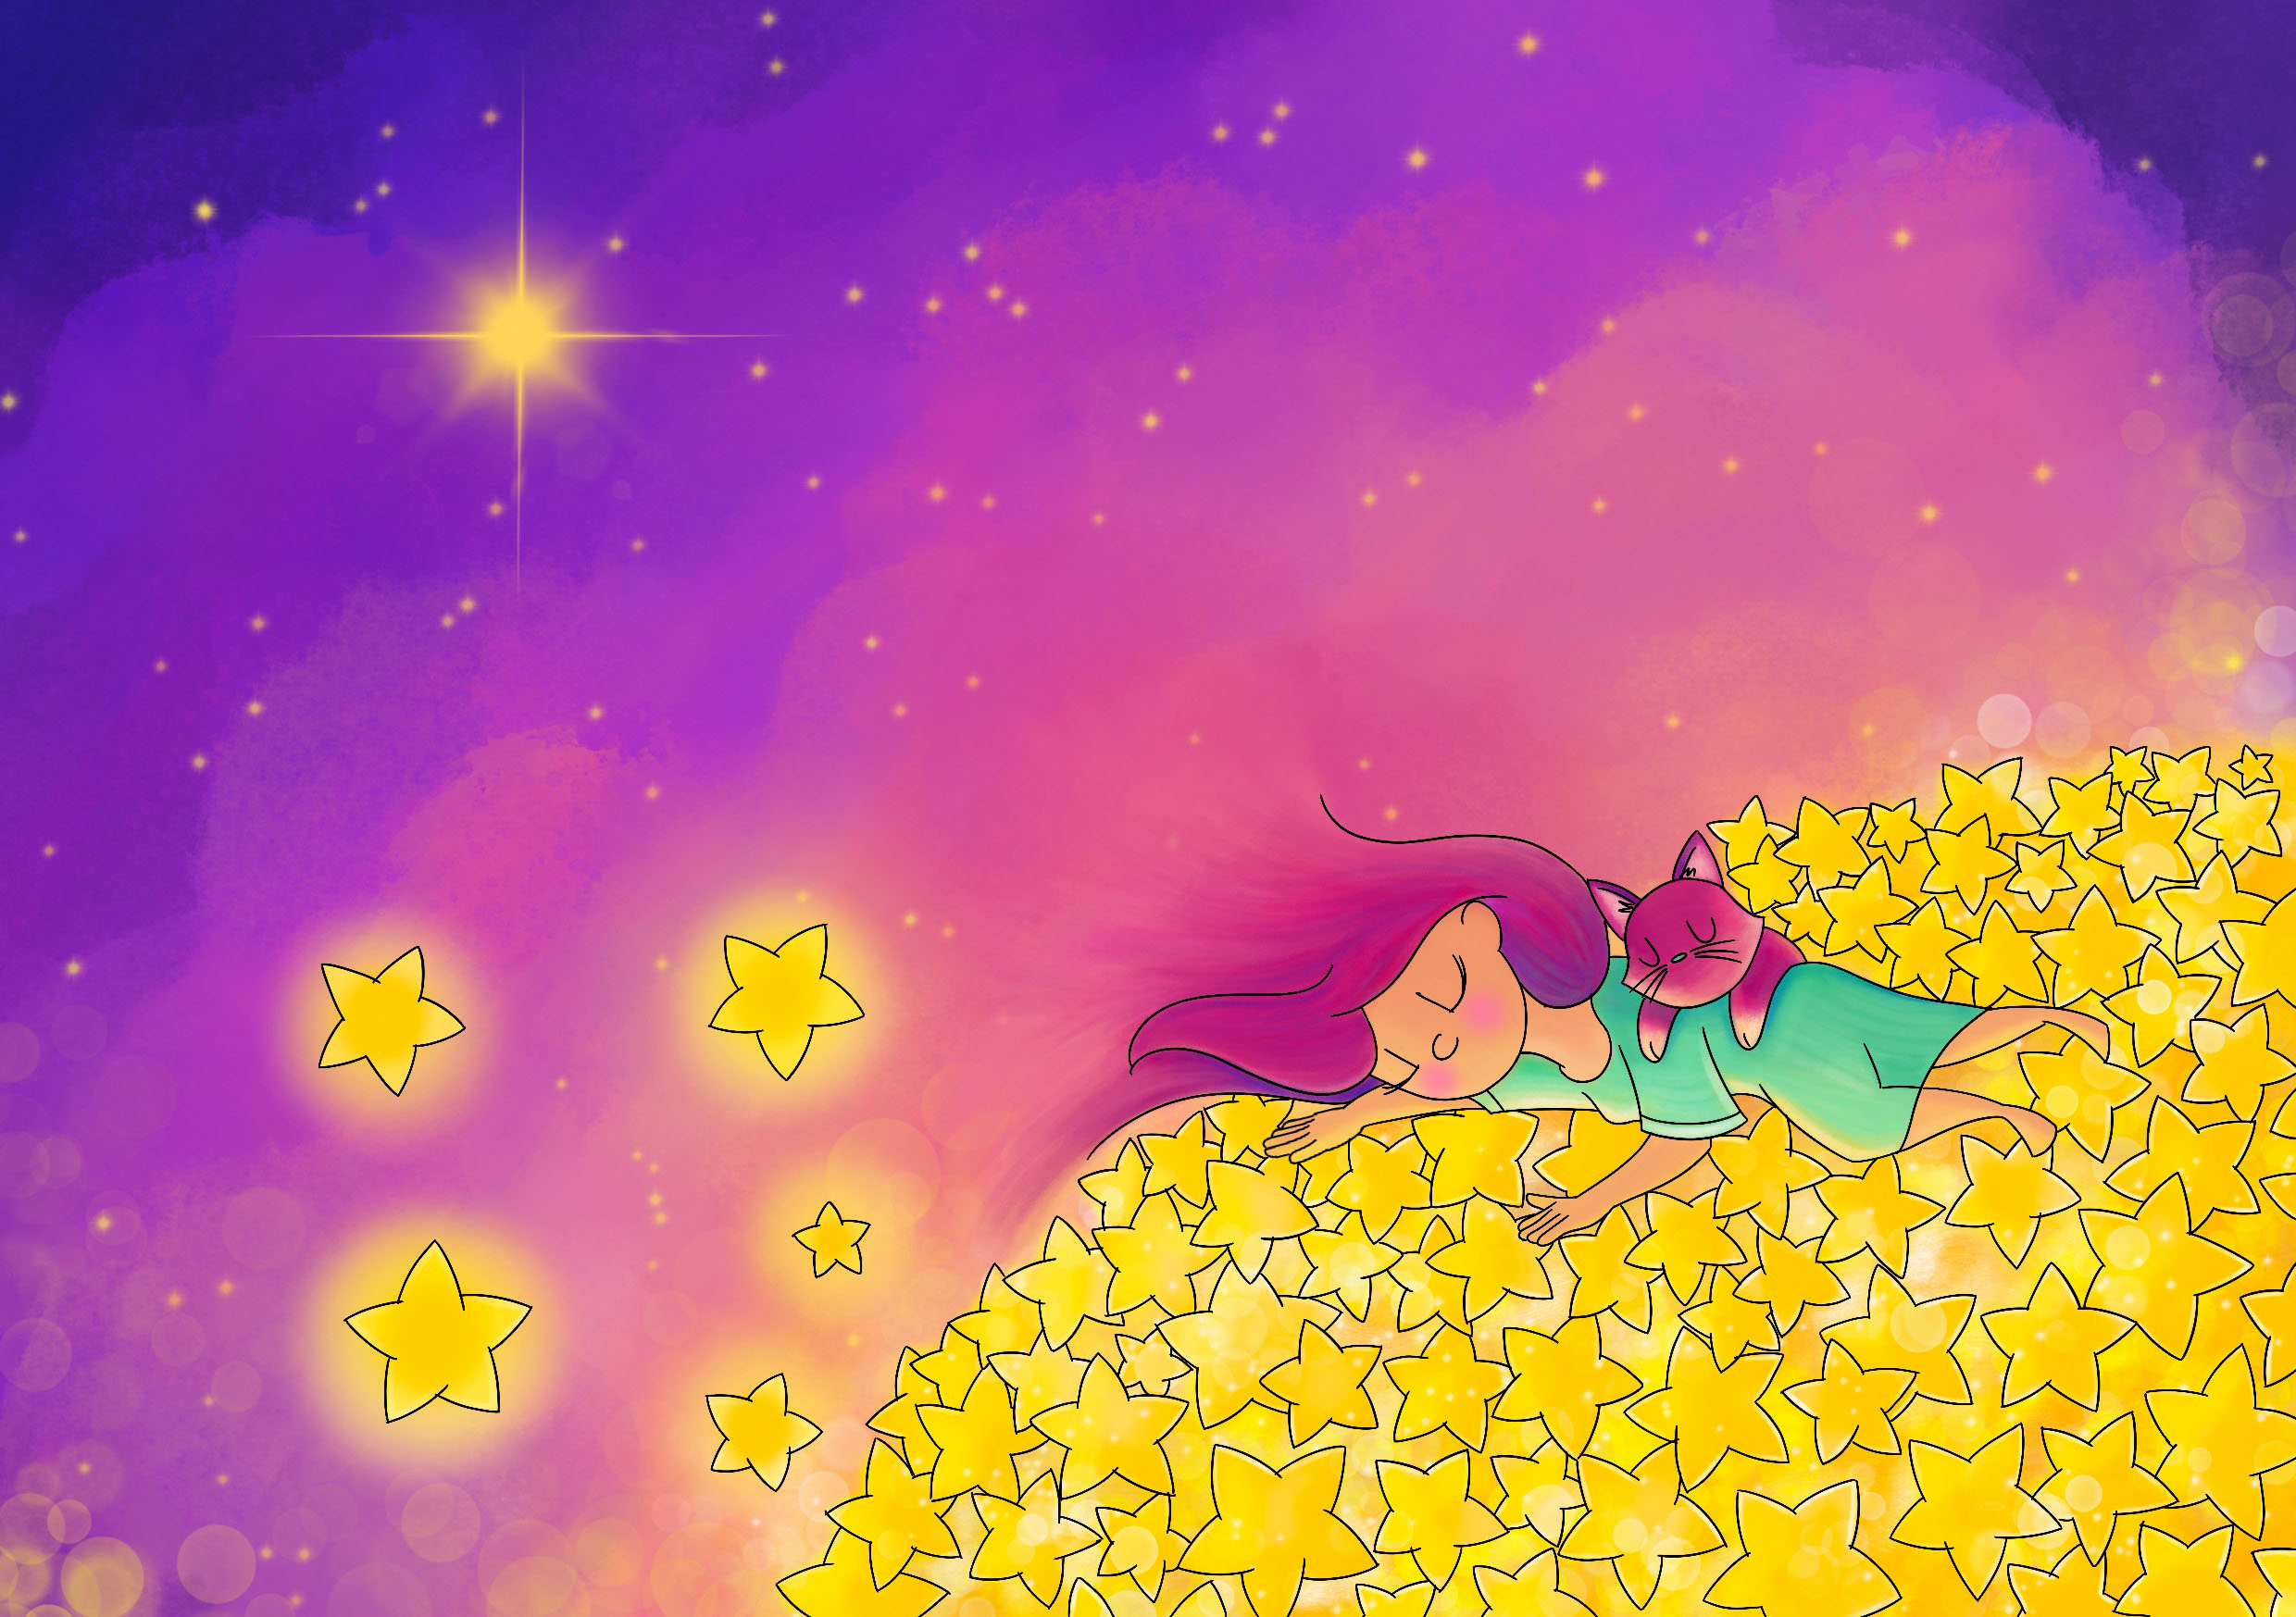 Let your dreams light up the night sky